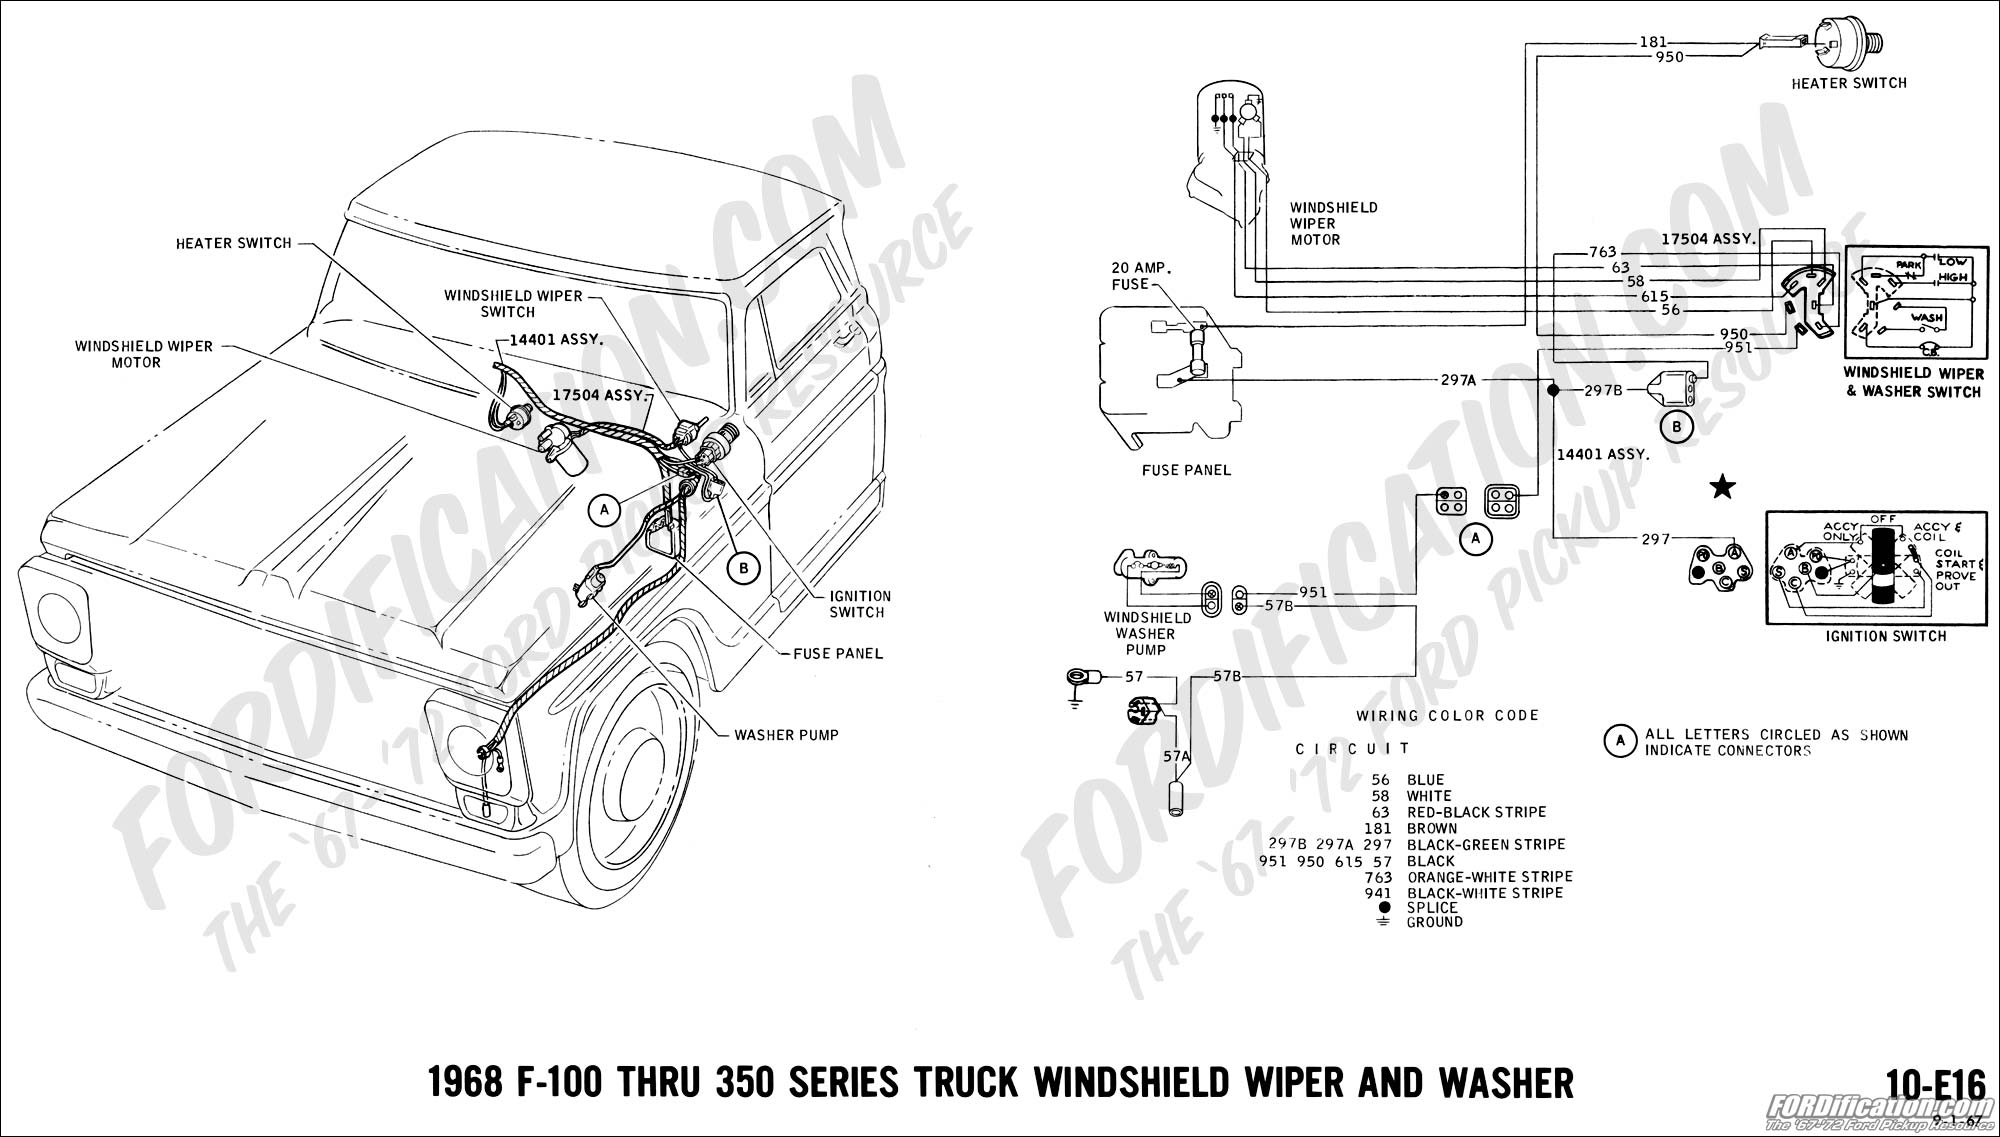 Dodge Ram Windshield Wiper Wiring Diagram on dodge pickup wiring diagram, dodge ram electrical diagram, dodge ignition wiring diagram, 1984 dodge d150 wiring diagram, 01 dodge ram water pump, 1985 dodge d150 wiring diagram, 01 kia rio wiring diagram, 01 dodge ram firing order, 01 dodge ram sub box, dodge ram 1500 diagram, 01 dodge ram seats, 01 dodge ram wiper motor, dodge infinity wiring diagram, 01 dodge ram brakes, 01 ford windstar wiring diagram, 01 dodge ram vacuum routing, 01 mitsubishi eclipse wiring diagram, 01 opel astra wiring diagram, 01 dodge ram headlights, 01 lincoln continental wiring diagram,